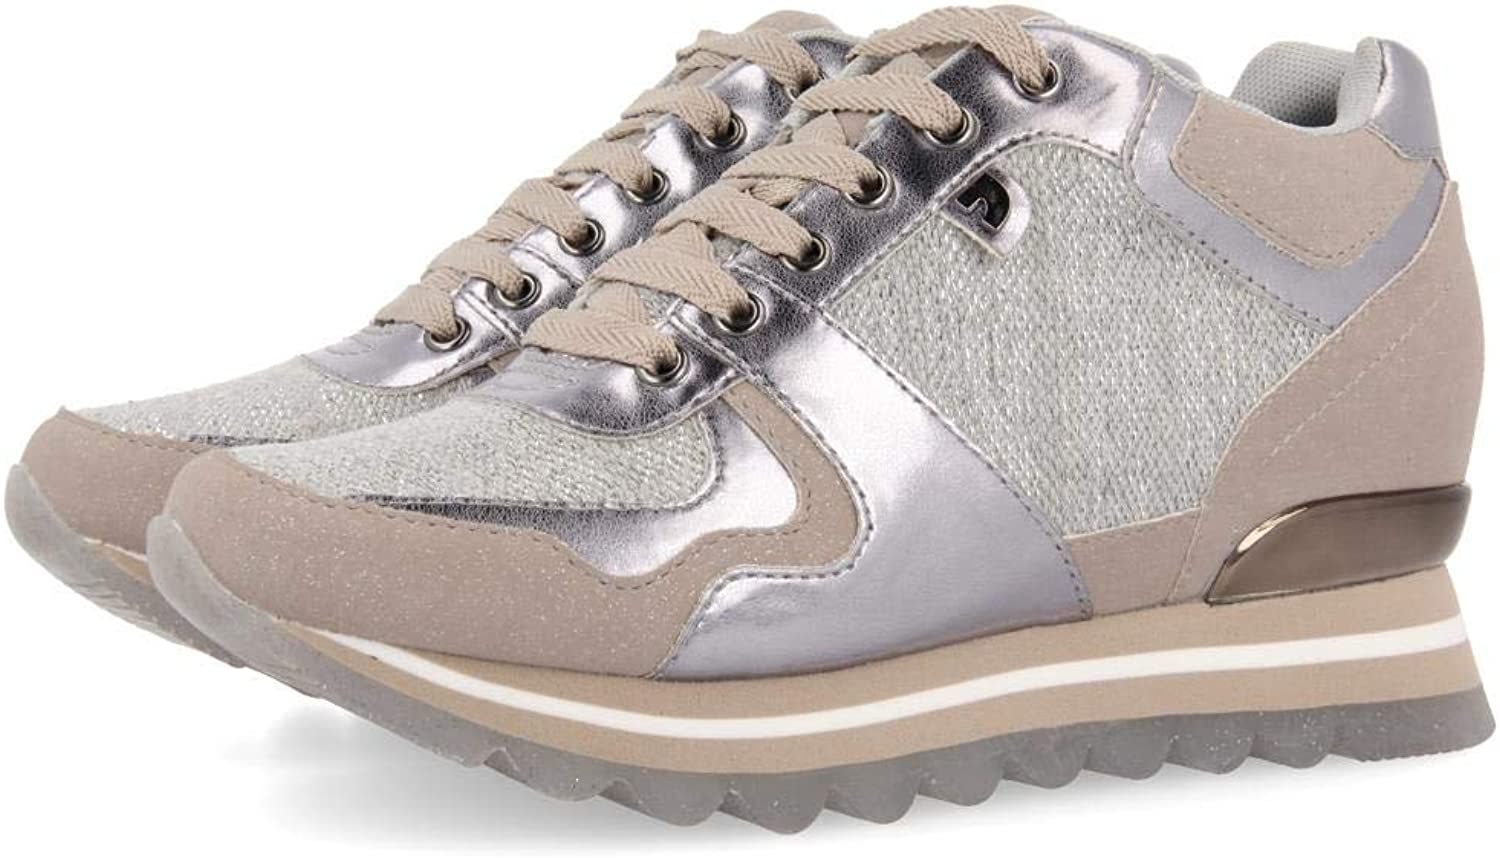 GIOSEPPO shoes woman low sneakers with internal wedge 47654 HAVRE silver size 41 Silver